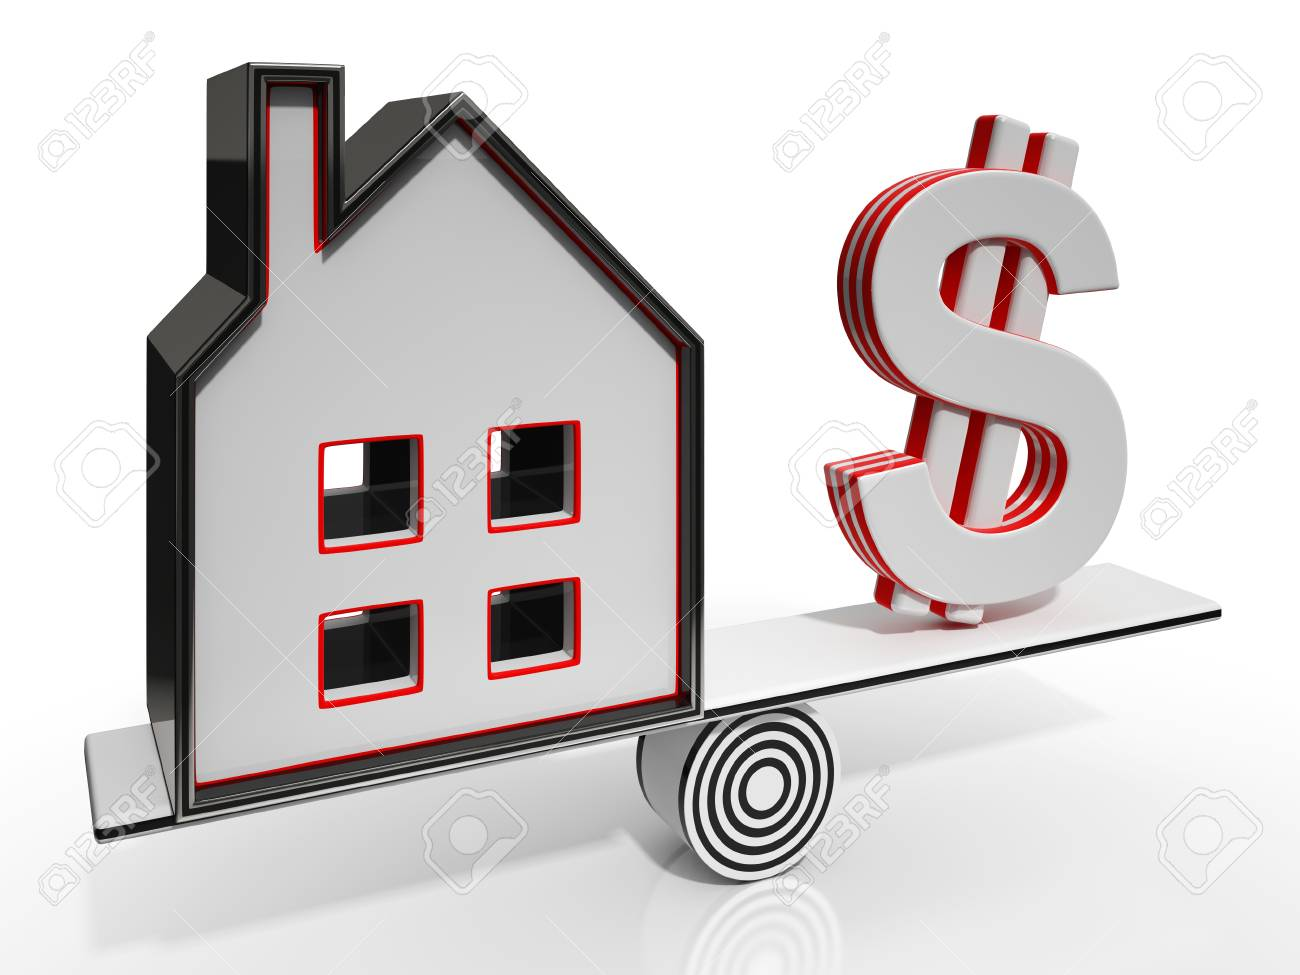 House And Dollar Balancing Showing Investment Or Mortgage Stock Photo - 26065502